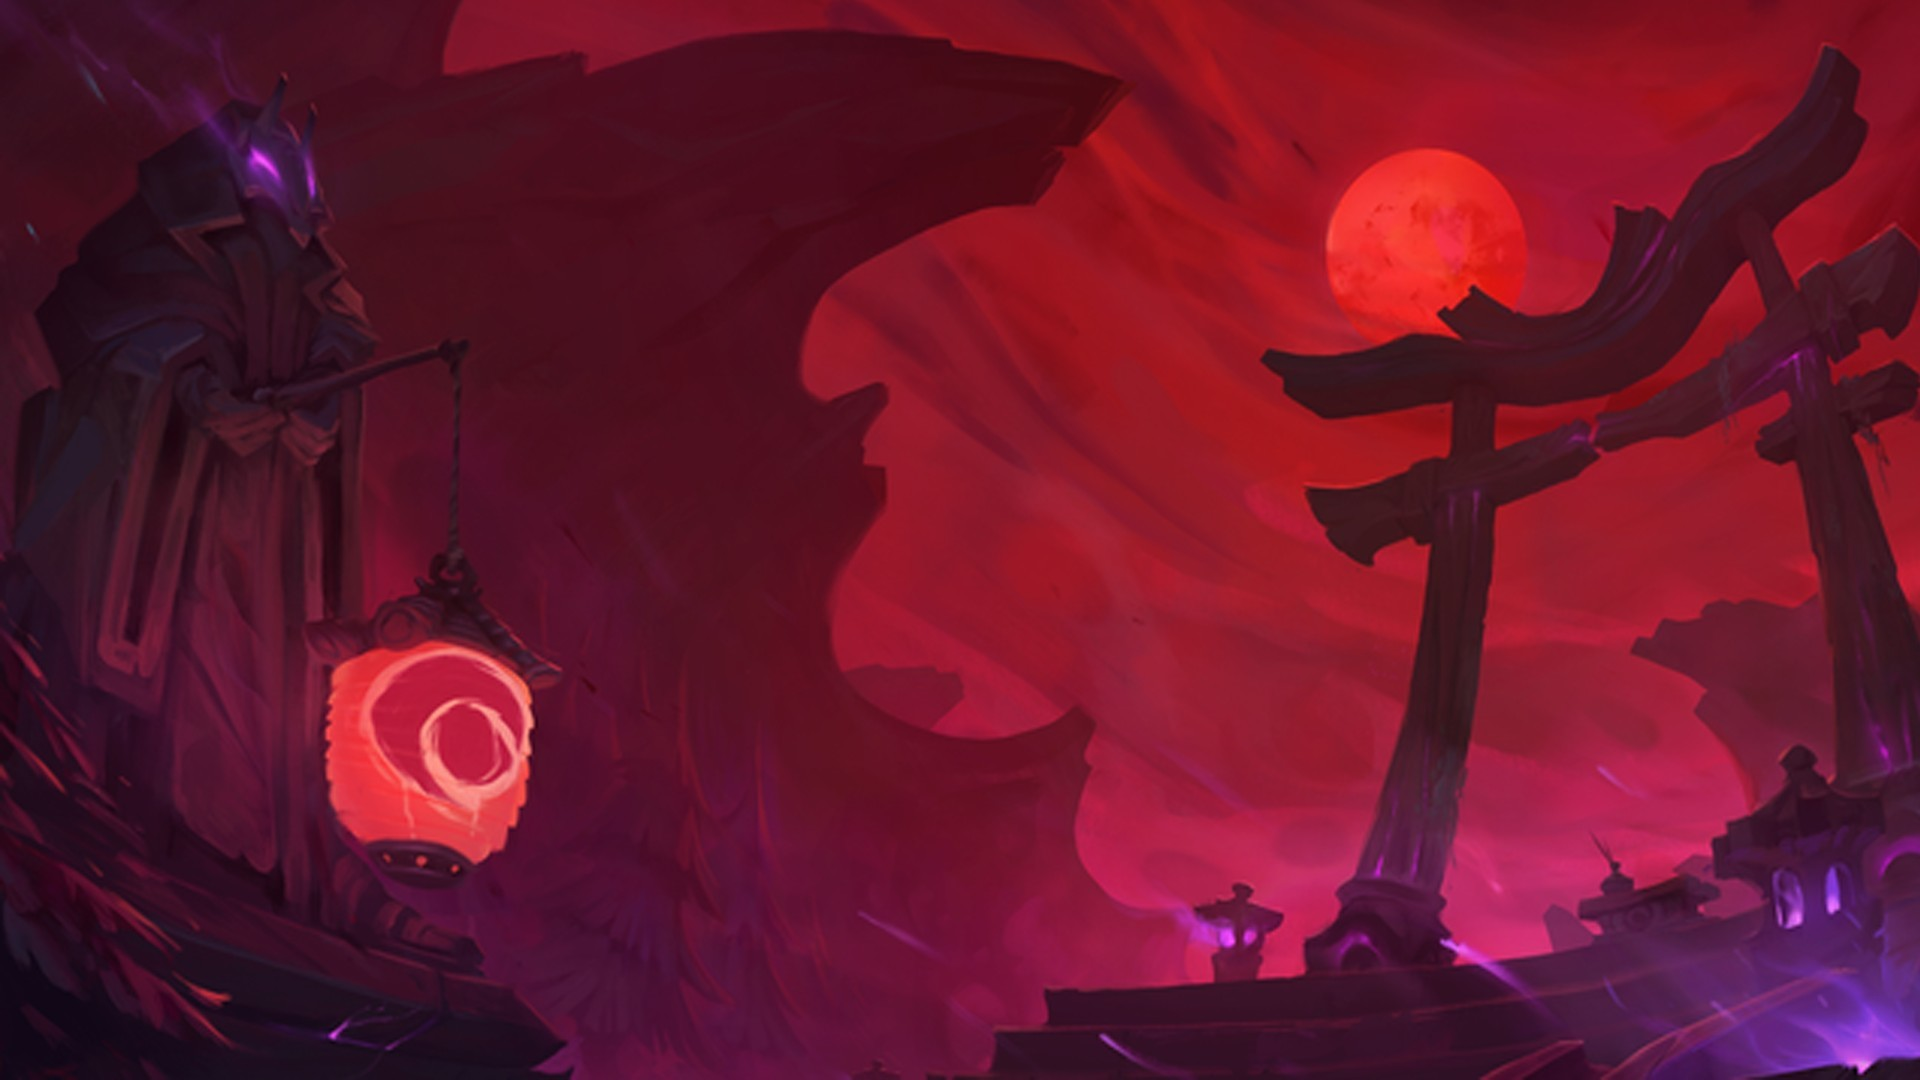 1920x1080 Summoners Rift Blood Moon Wallpapers Hd Blood Moon Wallpaper League Of Legends 3286064 Hd Wallpaper Backgrounds Download